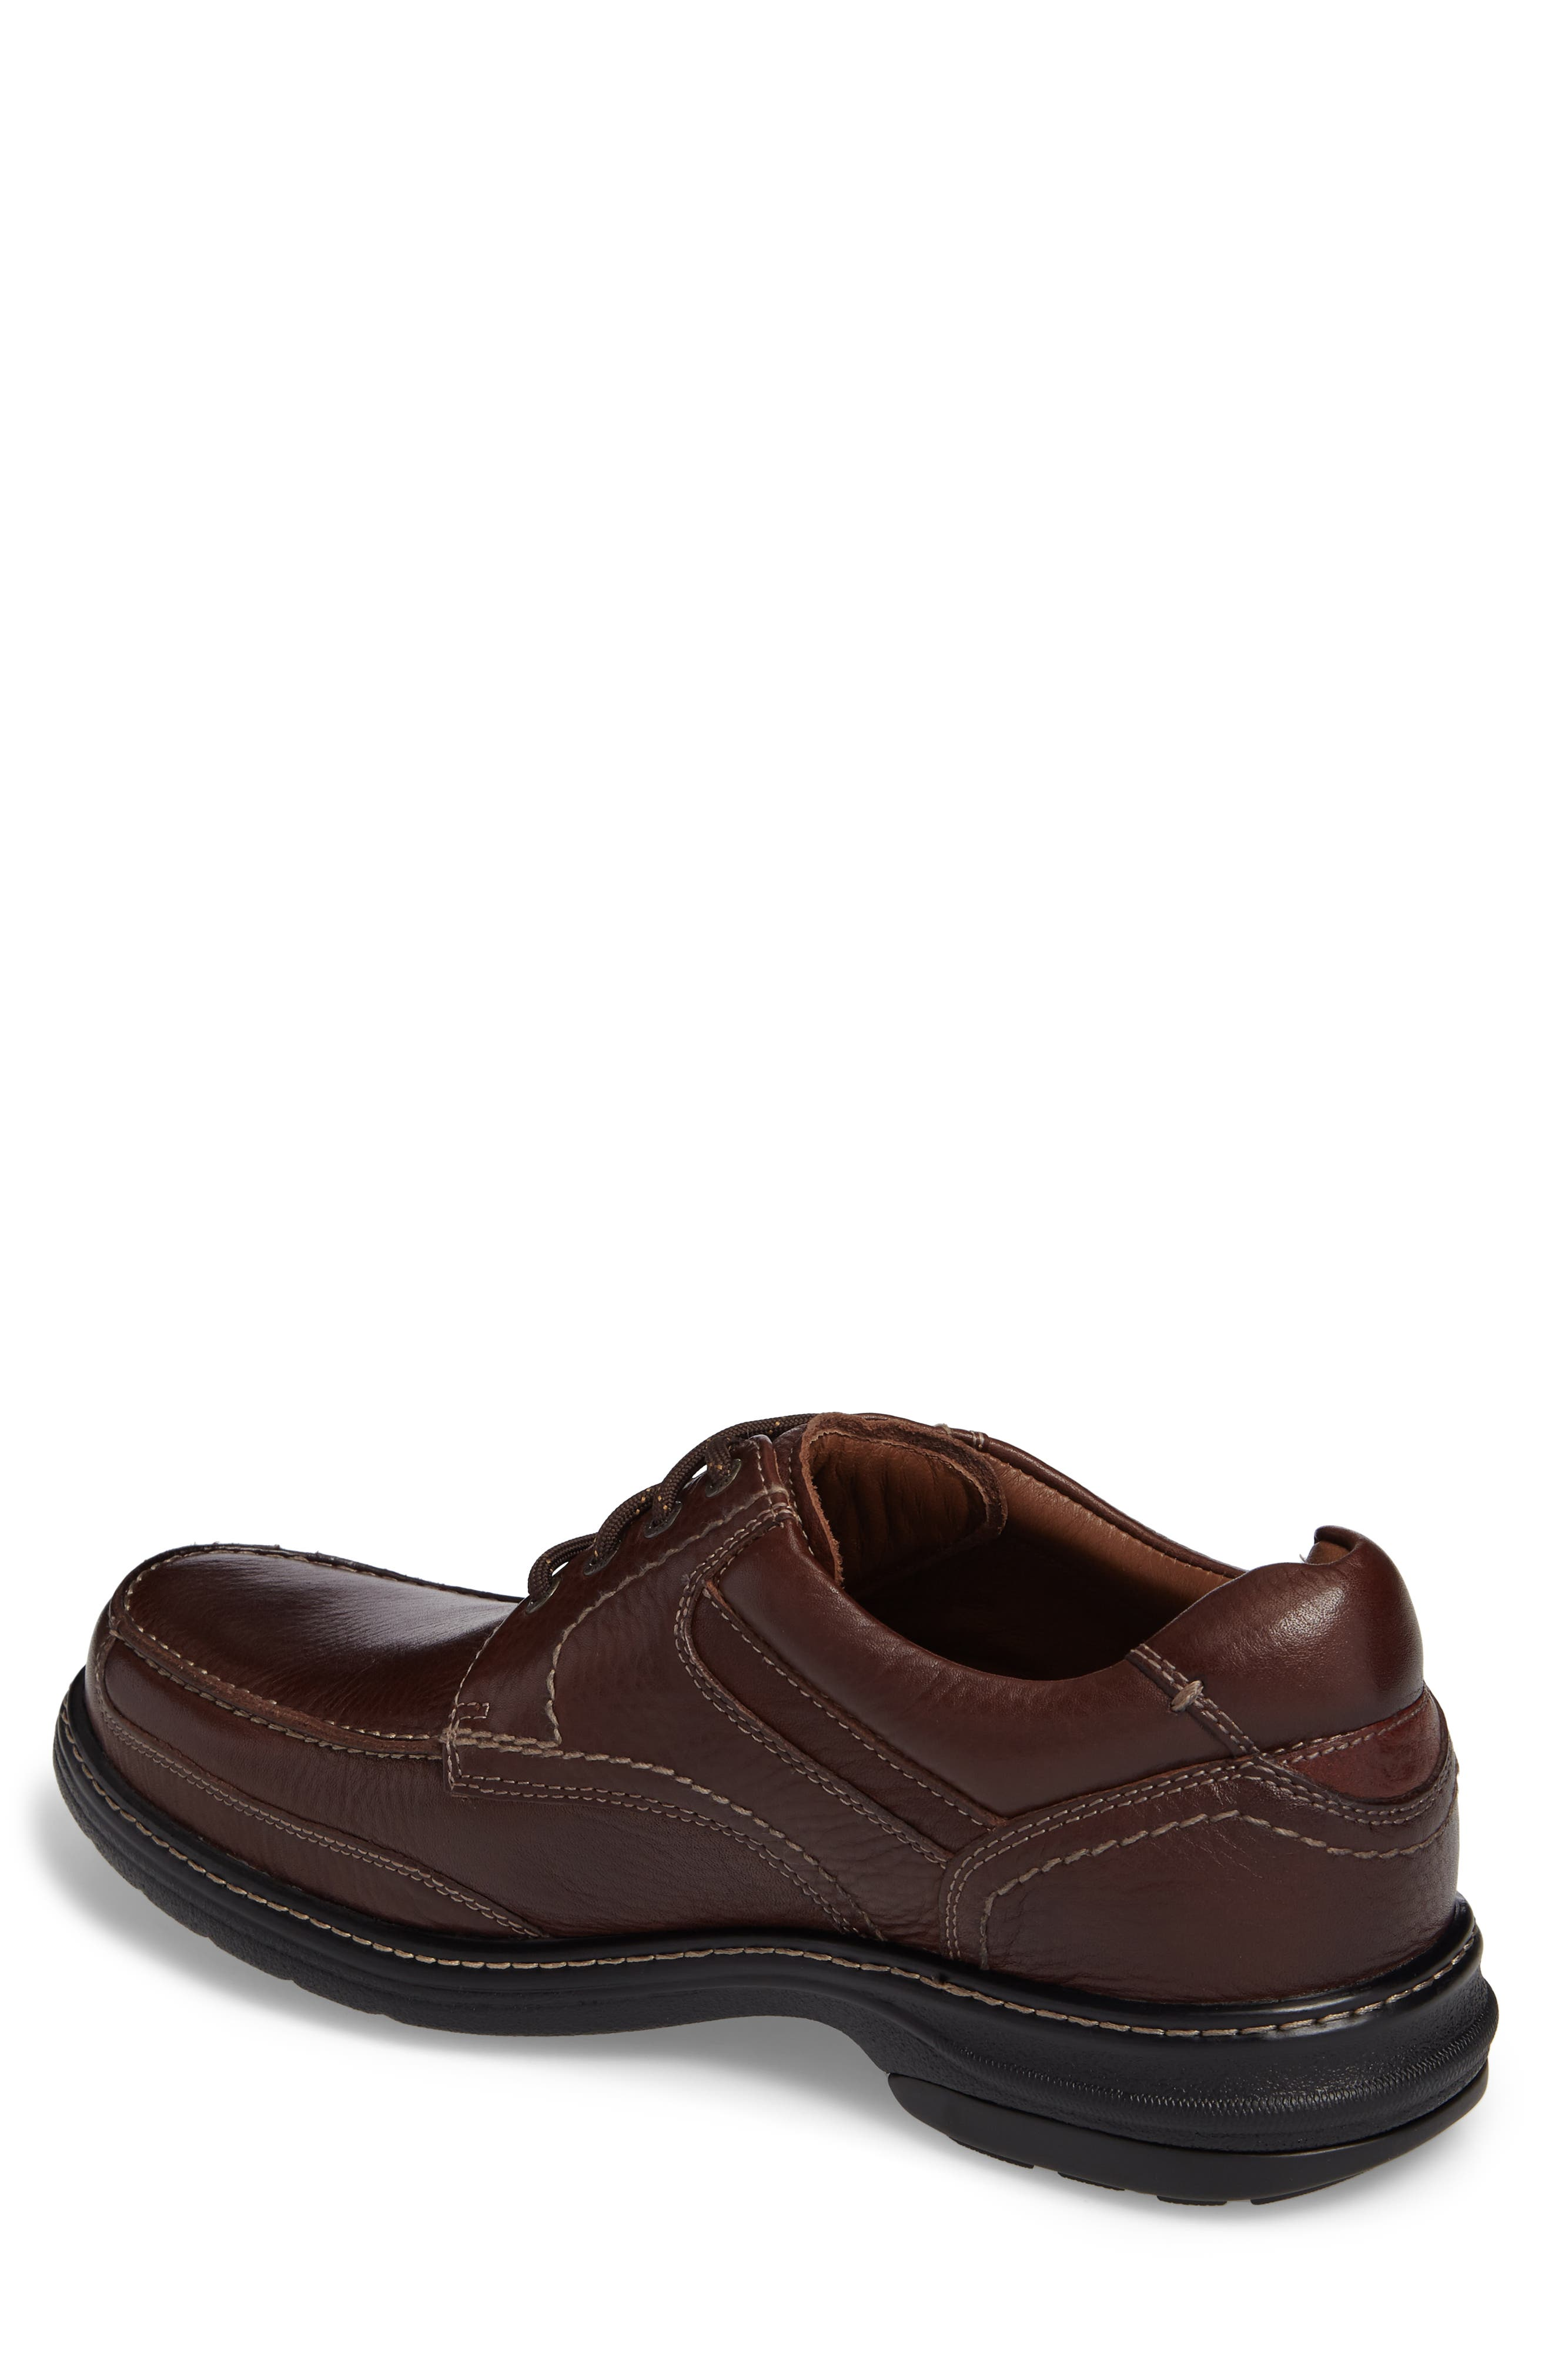 Windham Waterproof Moc Toe Derby,                             Alternate thumbnail 2, color,                             MAHOGANY